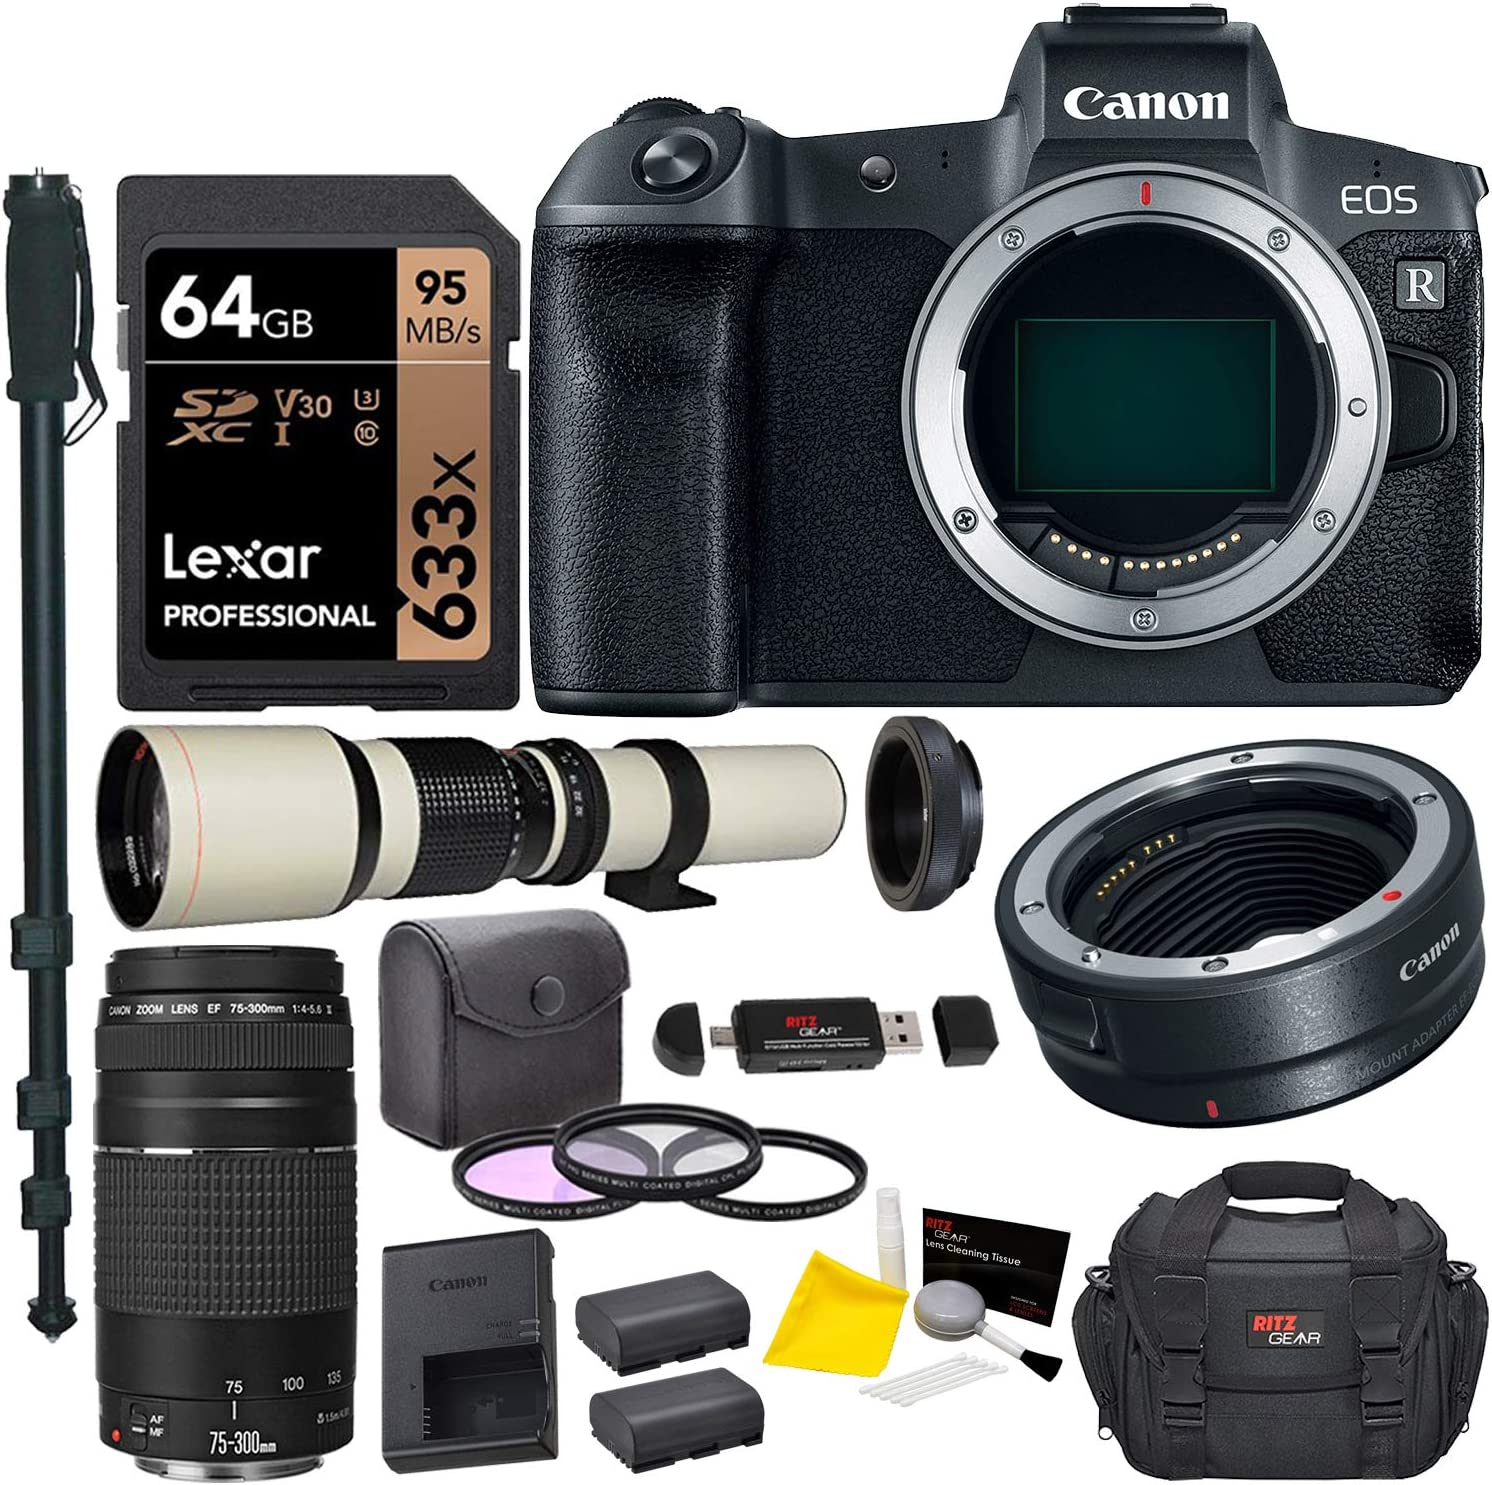 Canon EOS R Mirrorless Full Frame Digital Camera Lens Bundle with Canon 75-300mm III, Vivitar 500mm f/8, T-Mount, Canon Mount Adapter, Lexar 64GB U3 Card,